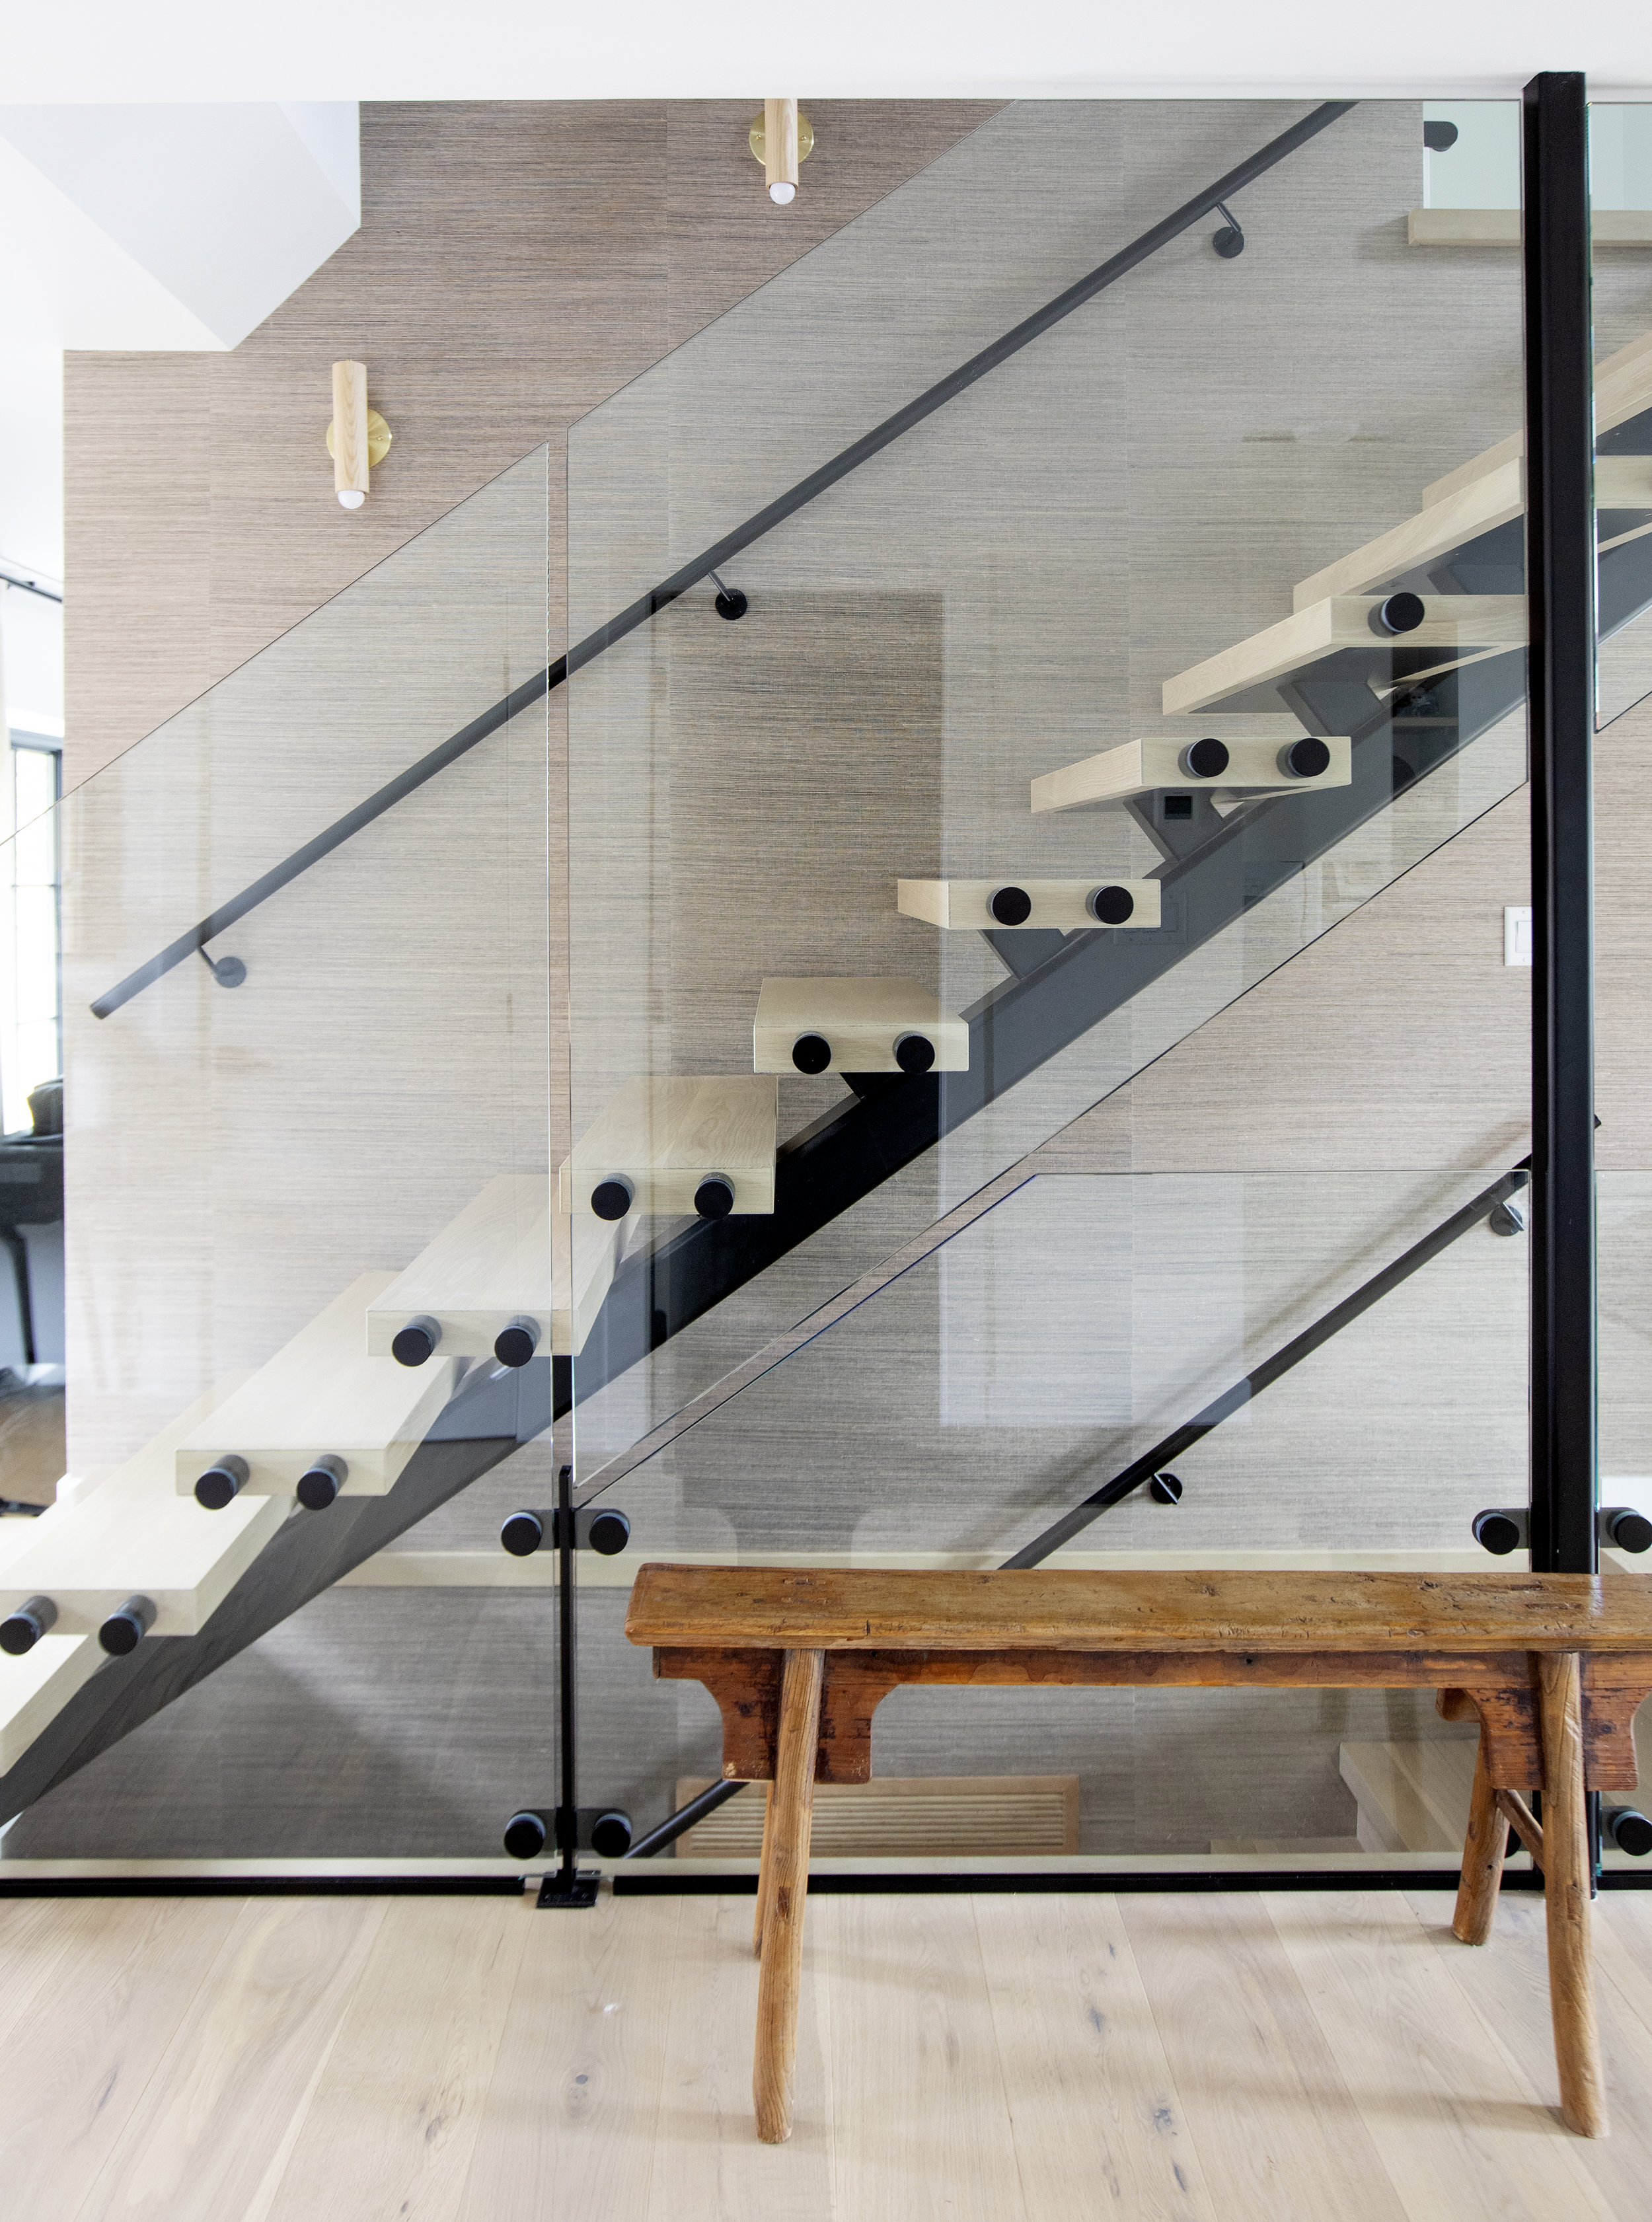 A look of the modern staircase in Alderfield Place, featuring glass railings and floating steps.